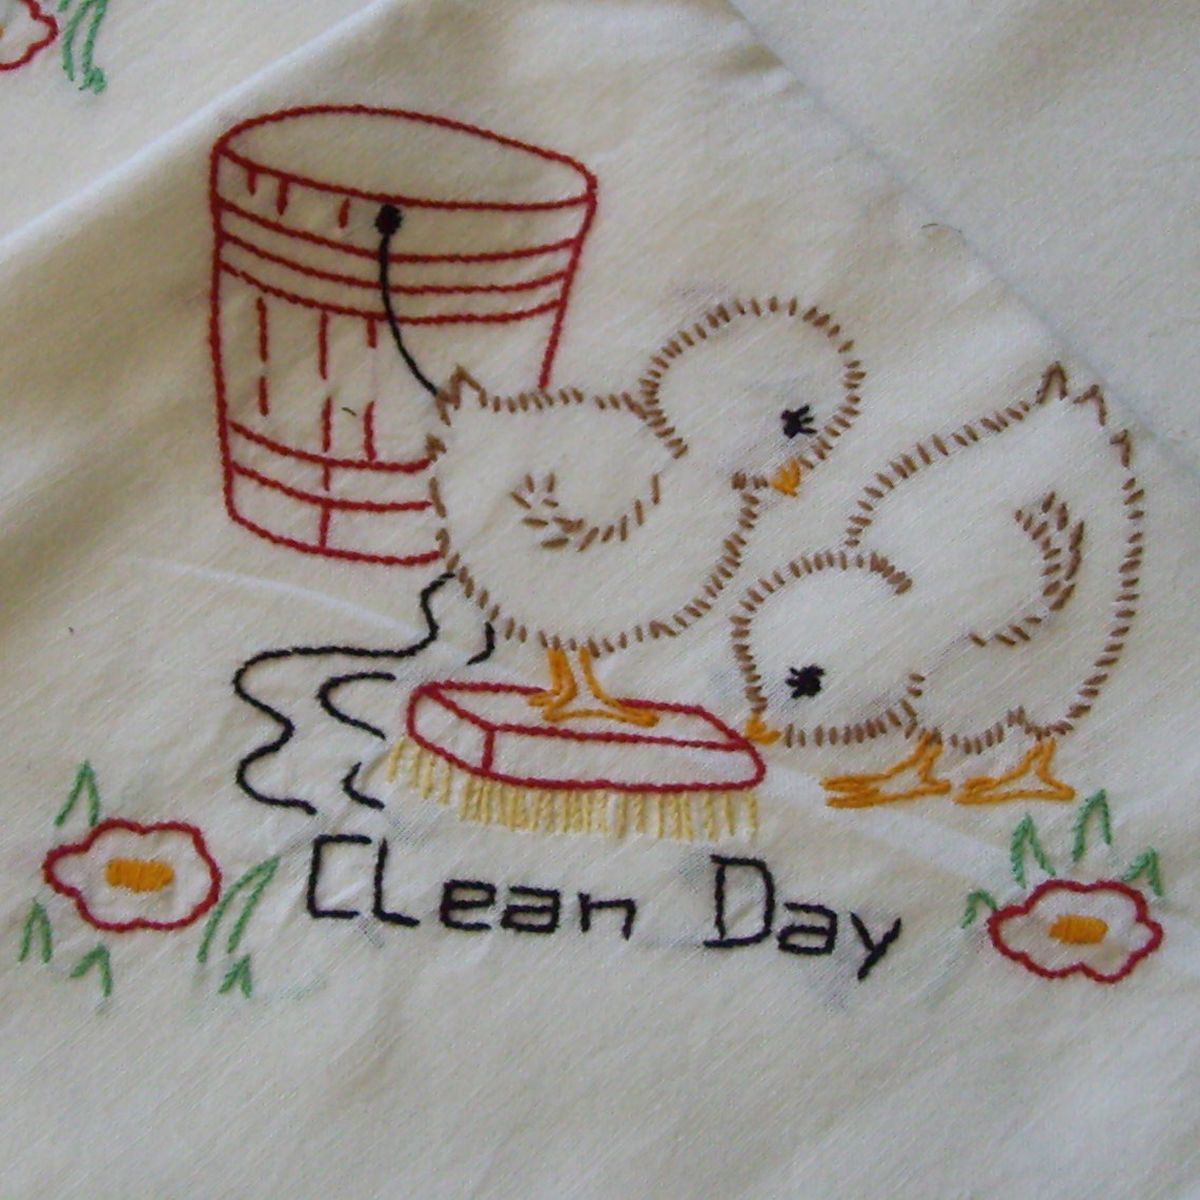 Vintage Flour Feed Sack Days of The Week Dish Towels 7 Embroidered with Chicks   eBay